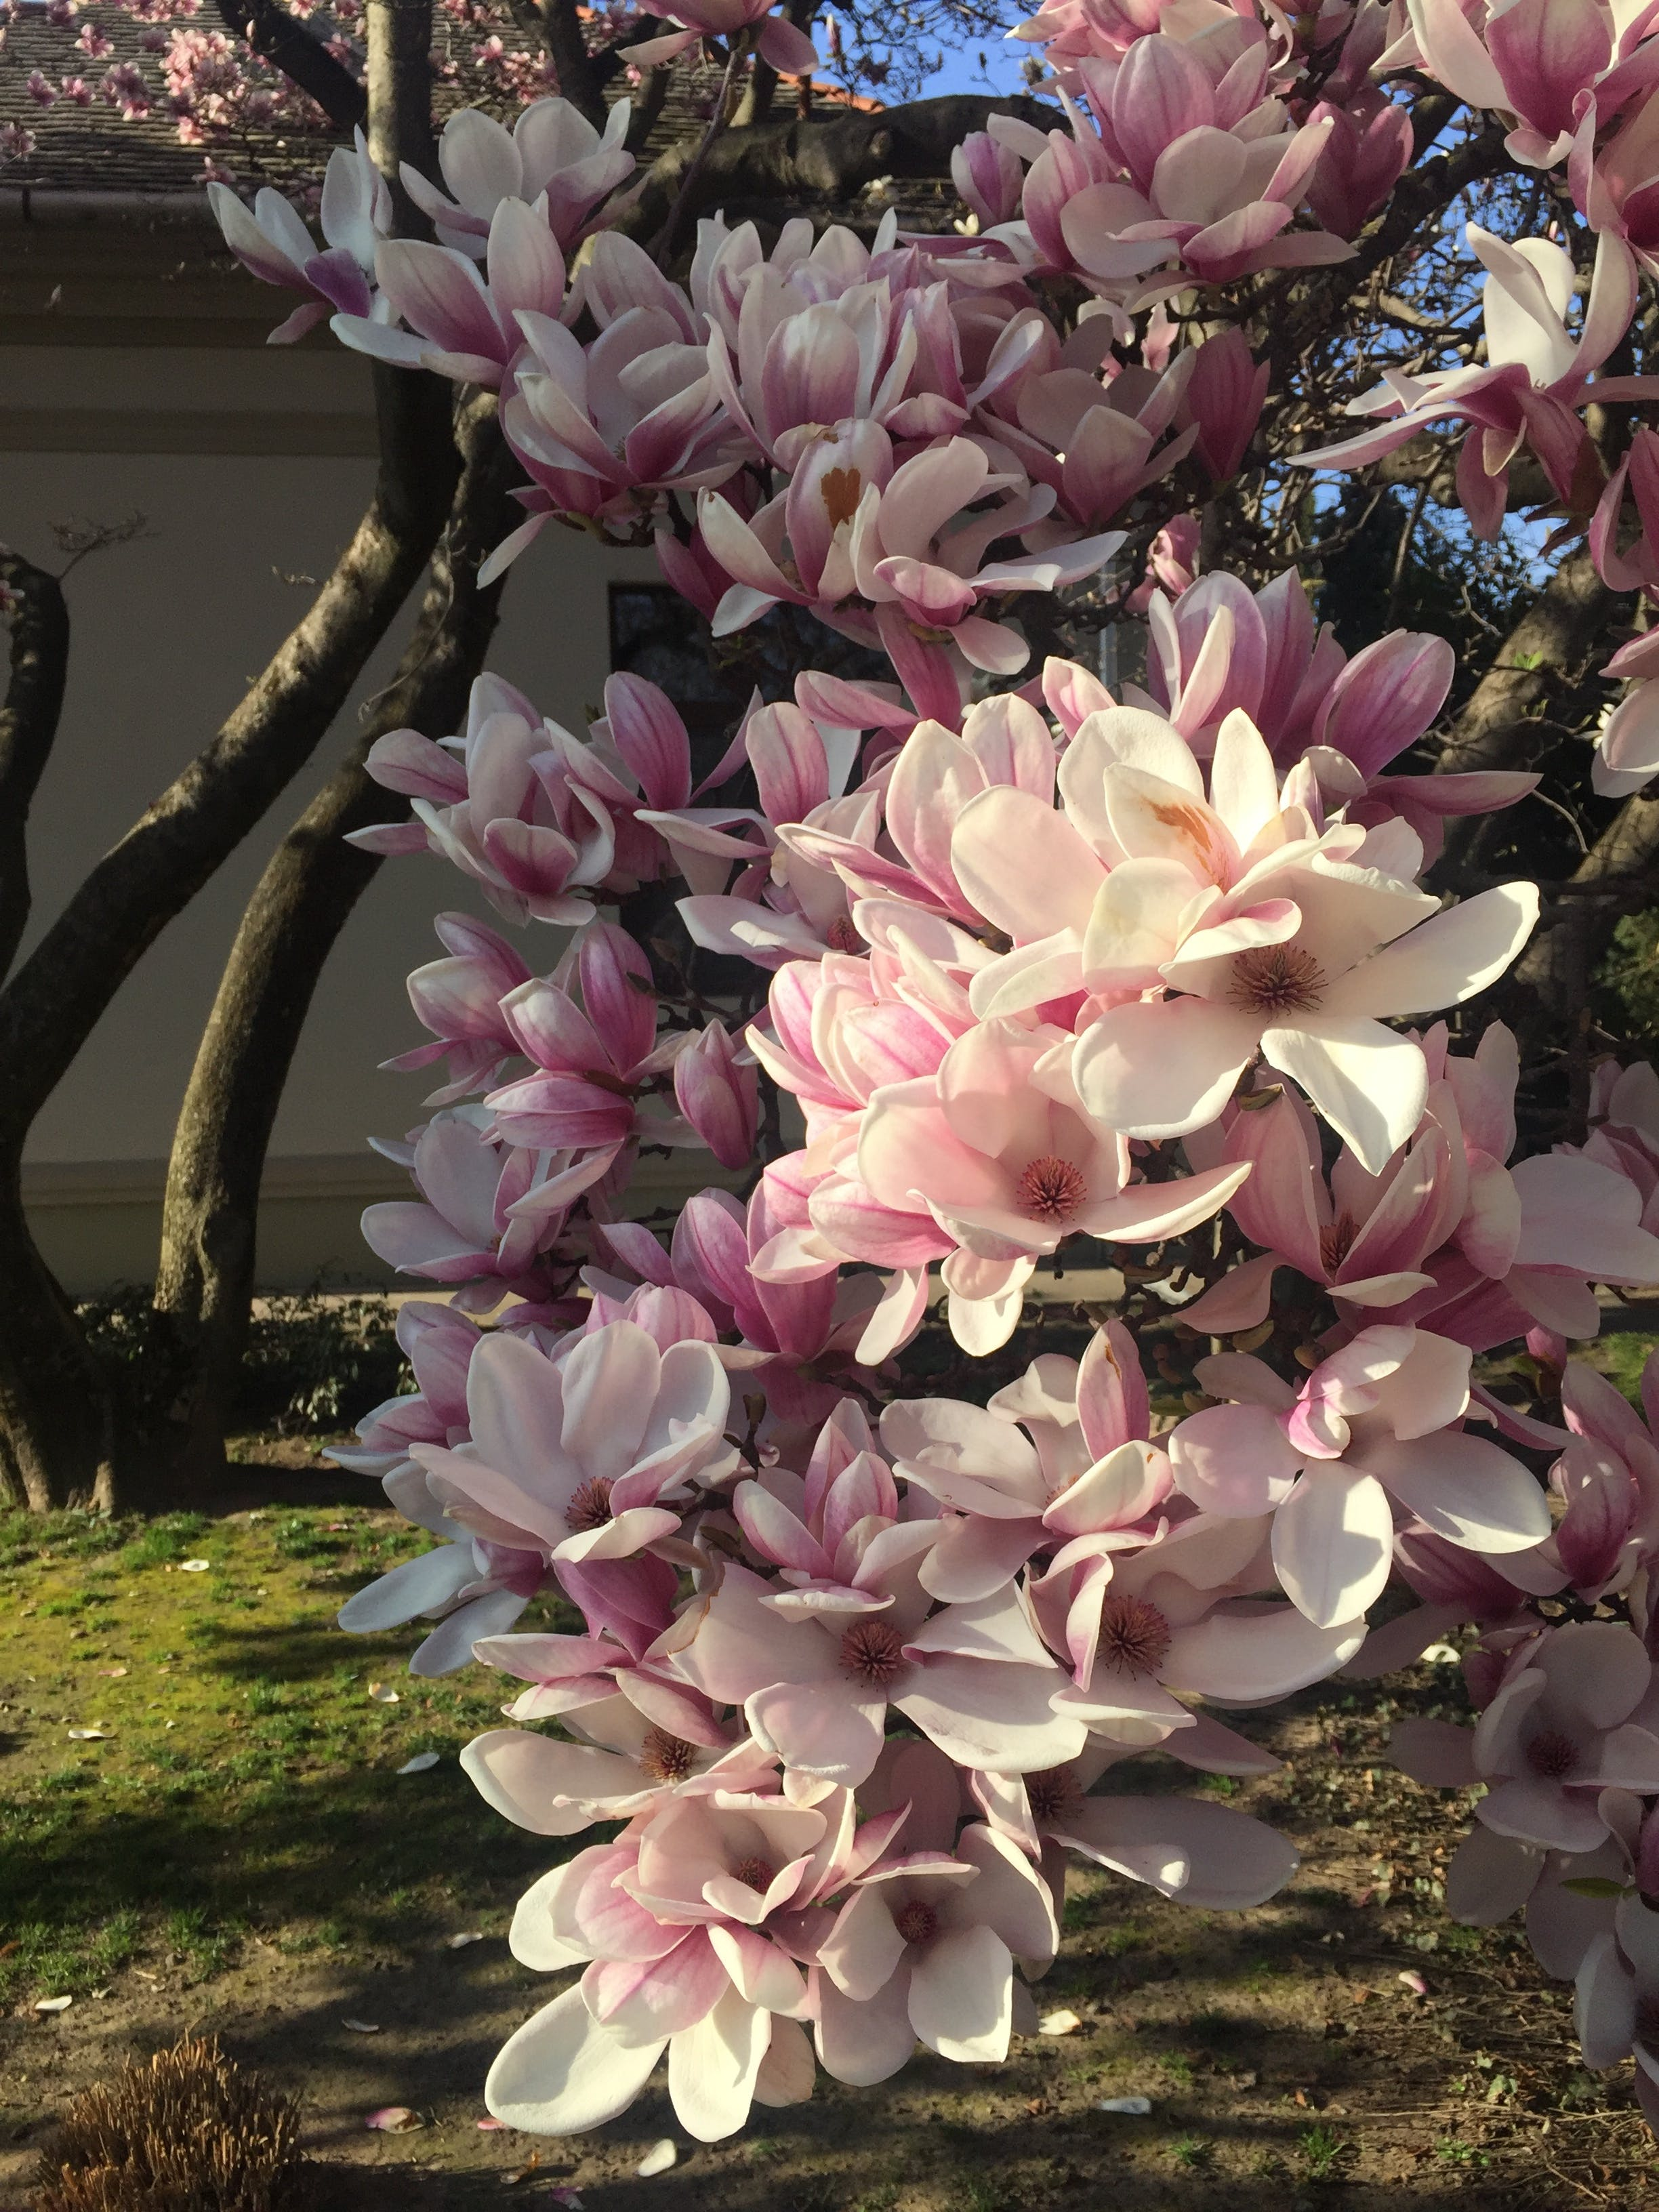 Free stock photo of spring, flower, pink, magnolia